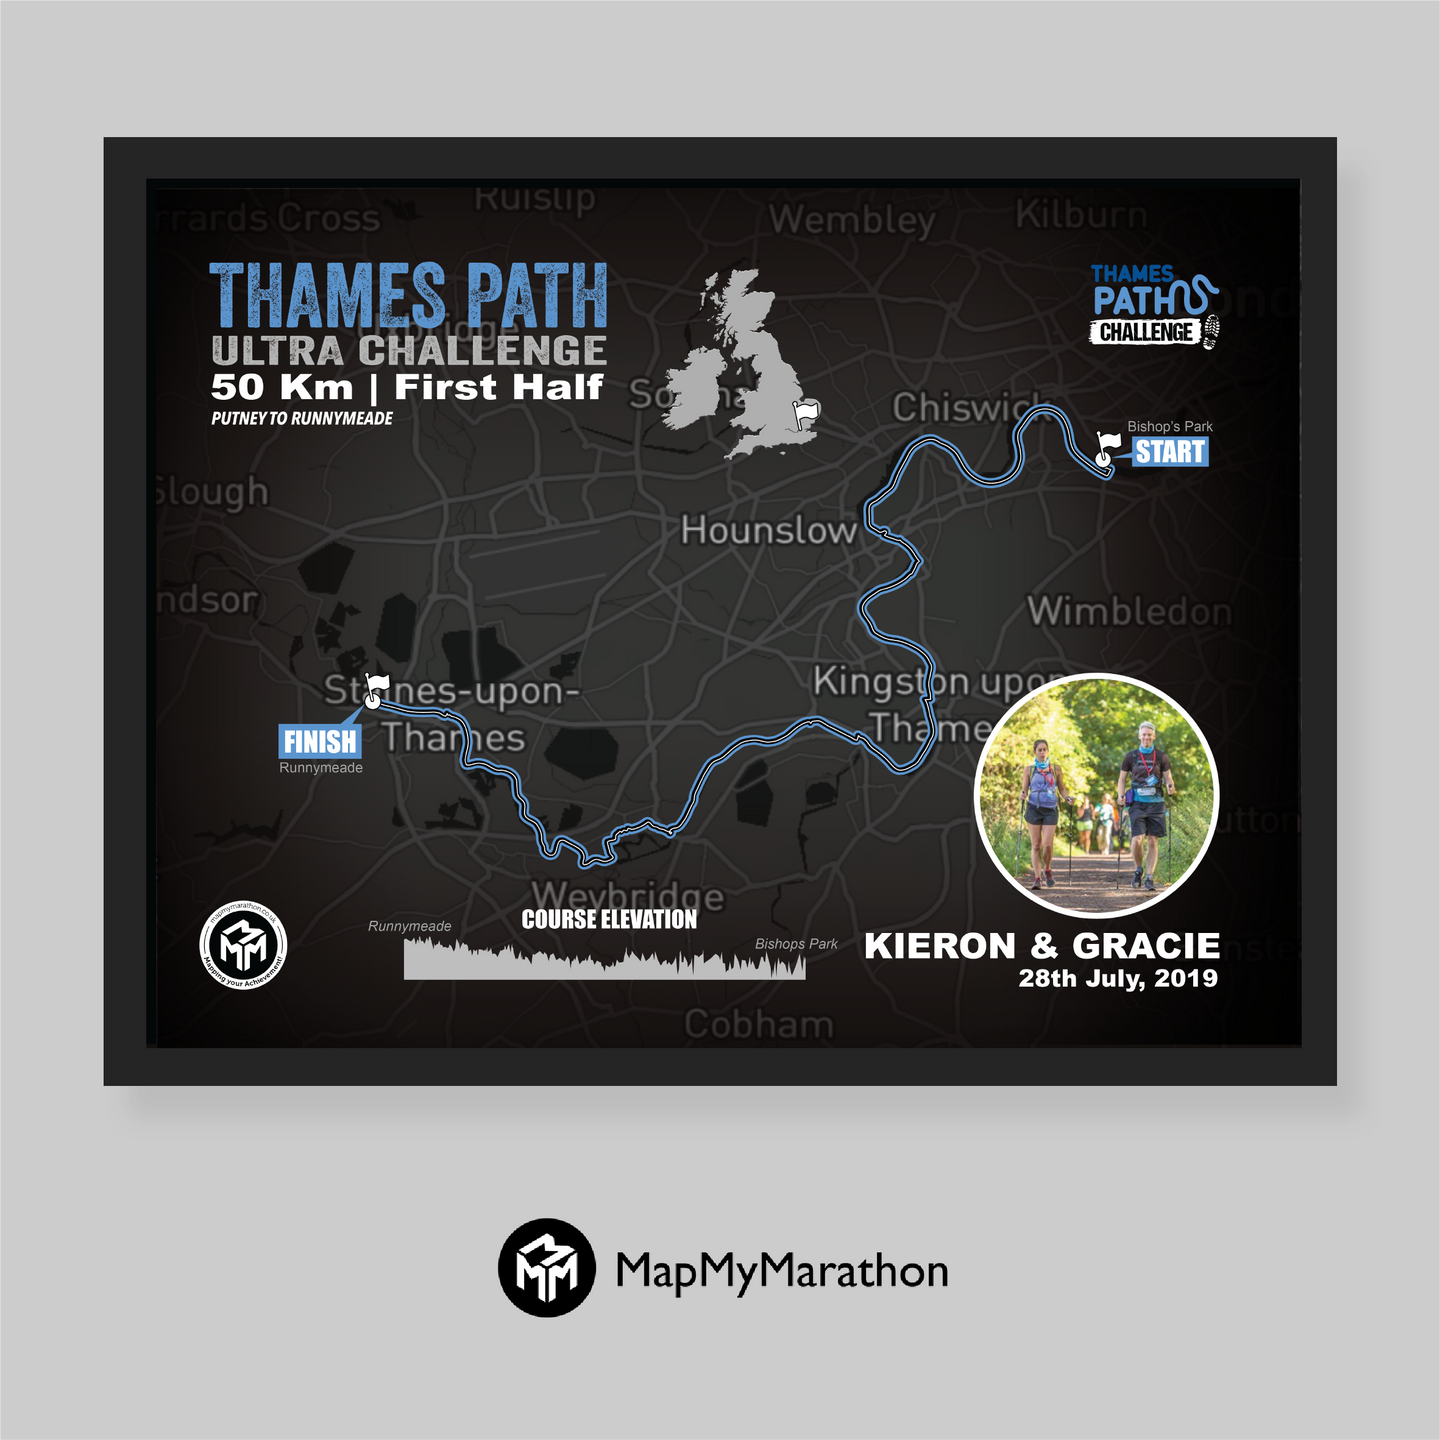 Thames Path Ultra Challenge - First Half